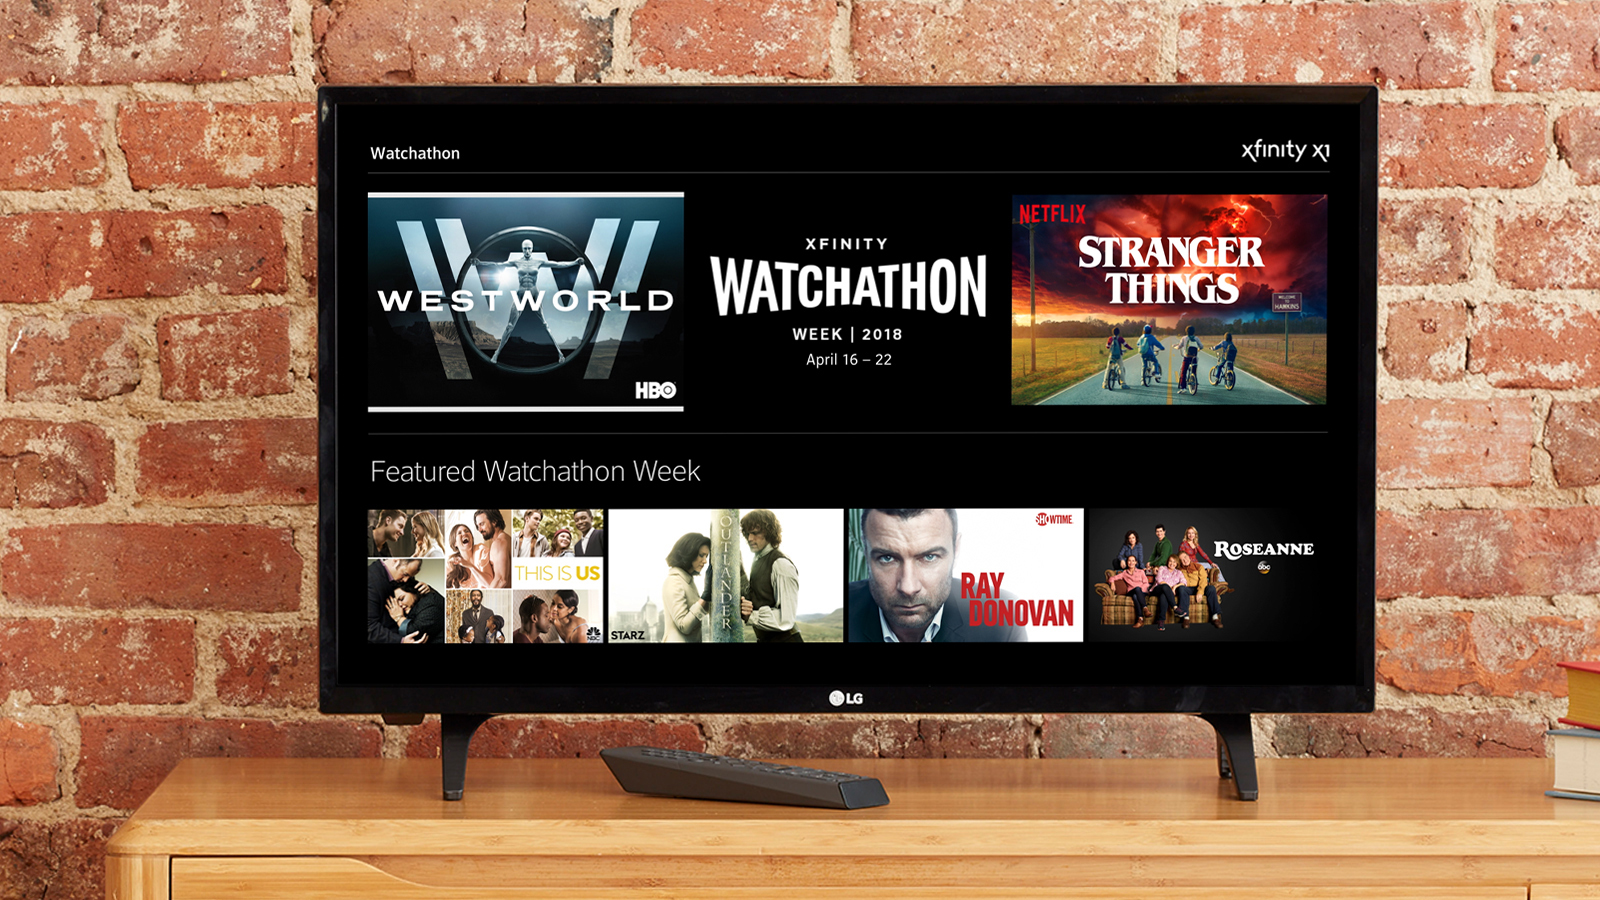 Xfinity Watchathon Week Returns April 16 – 22 with More for